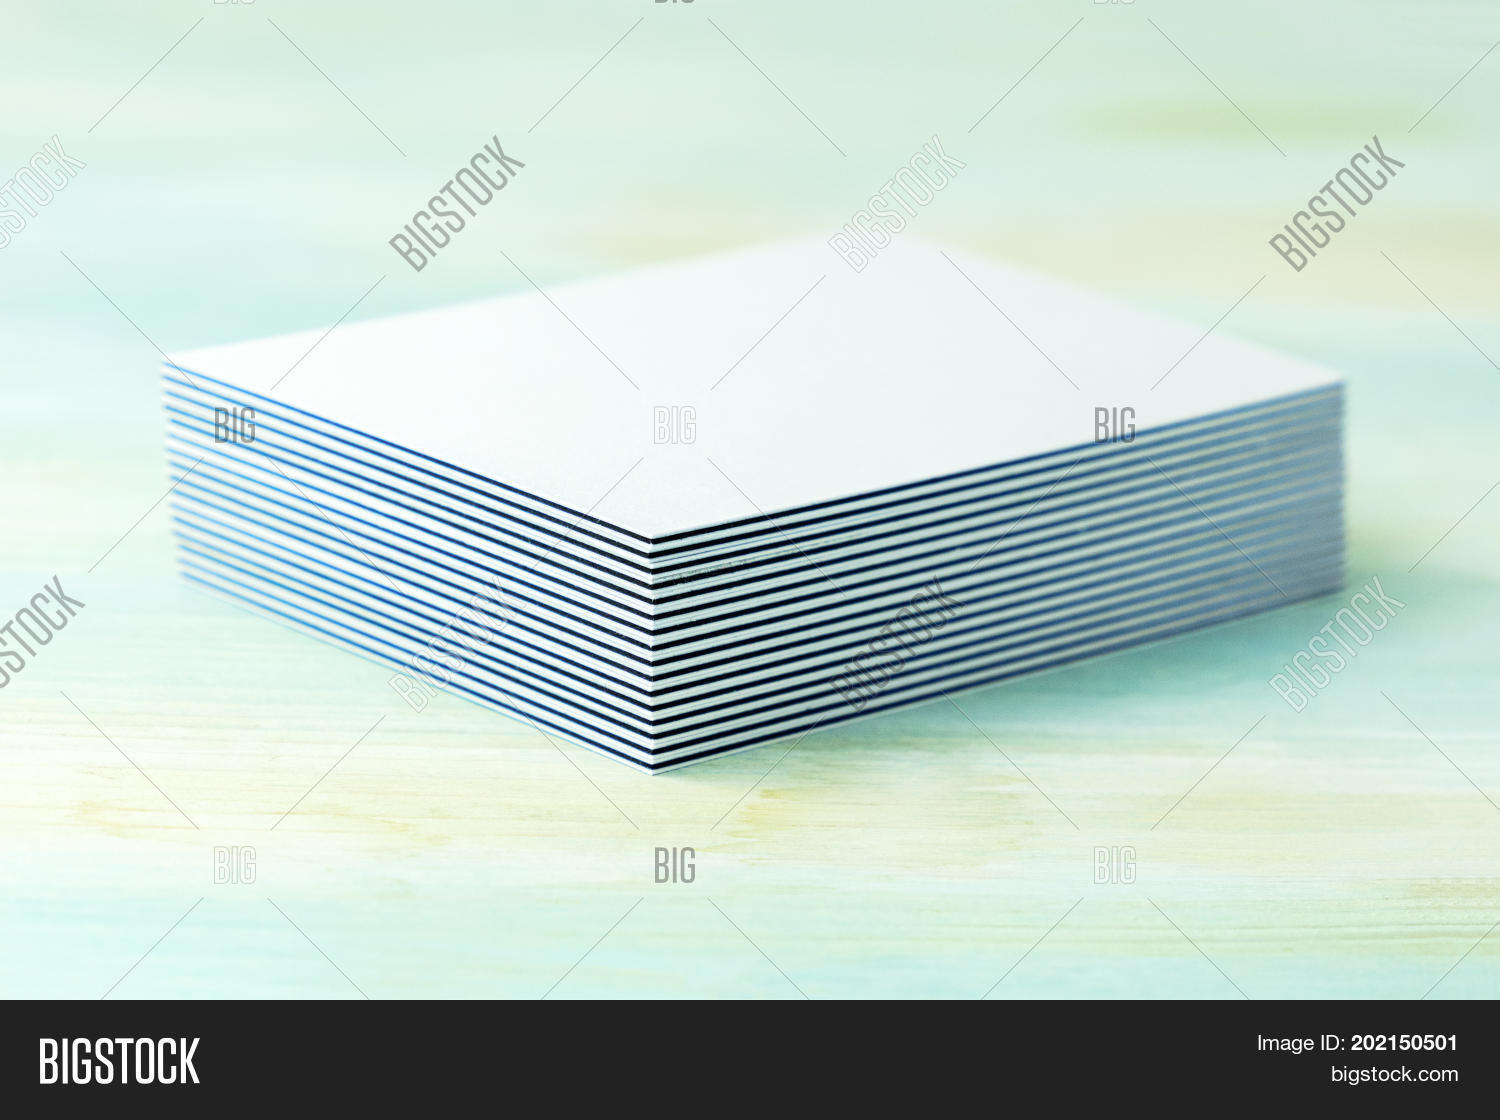 Stack blank layered business cards image photo bigstock a stack of blank layered business cards with painted edges on a teal background colourmoves